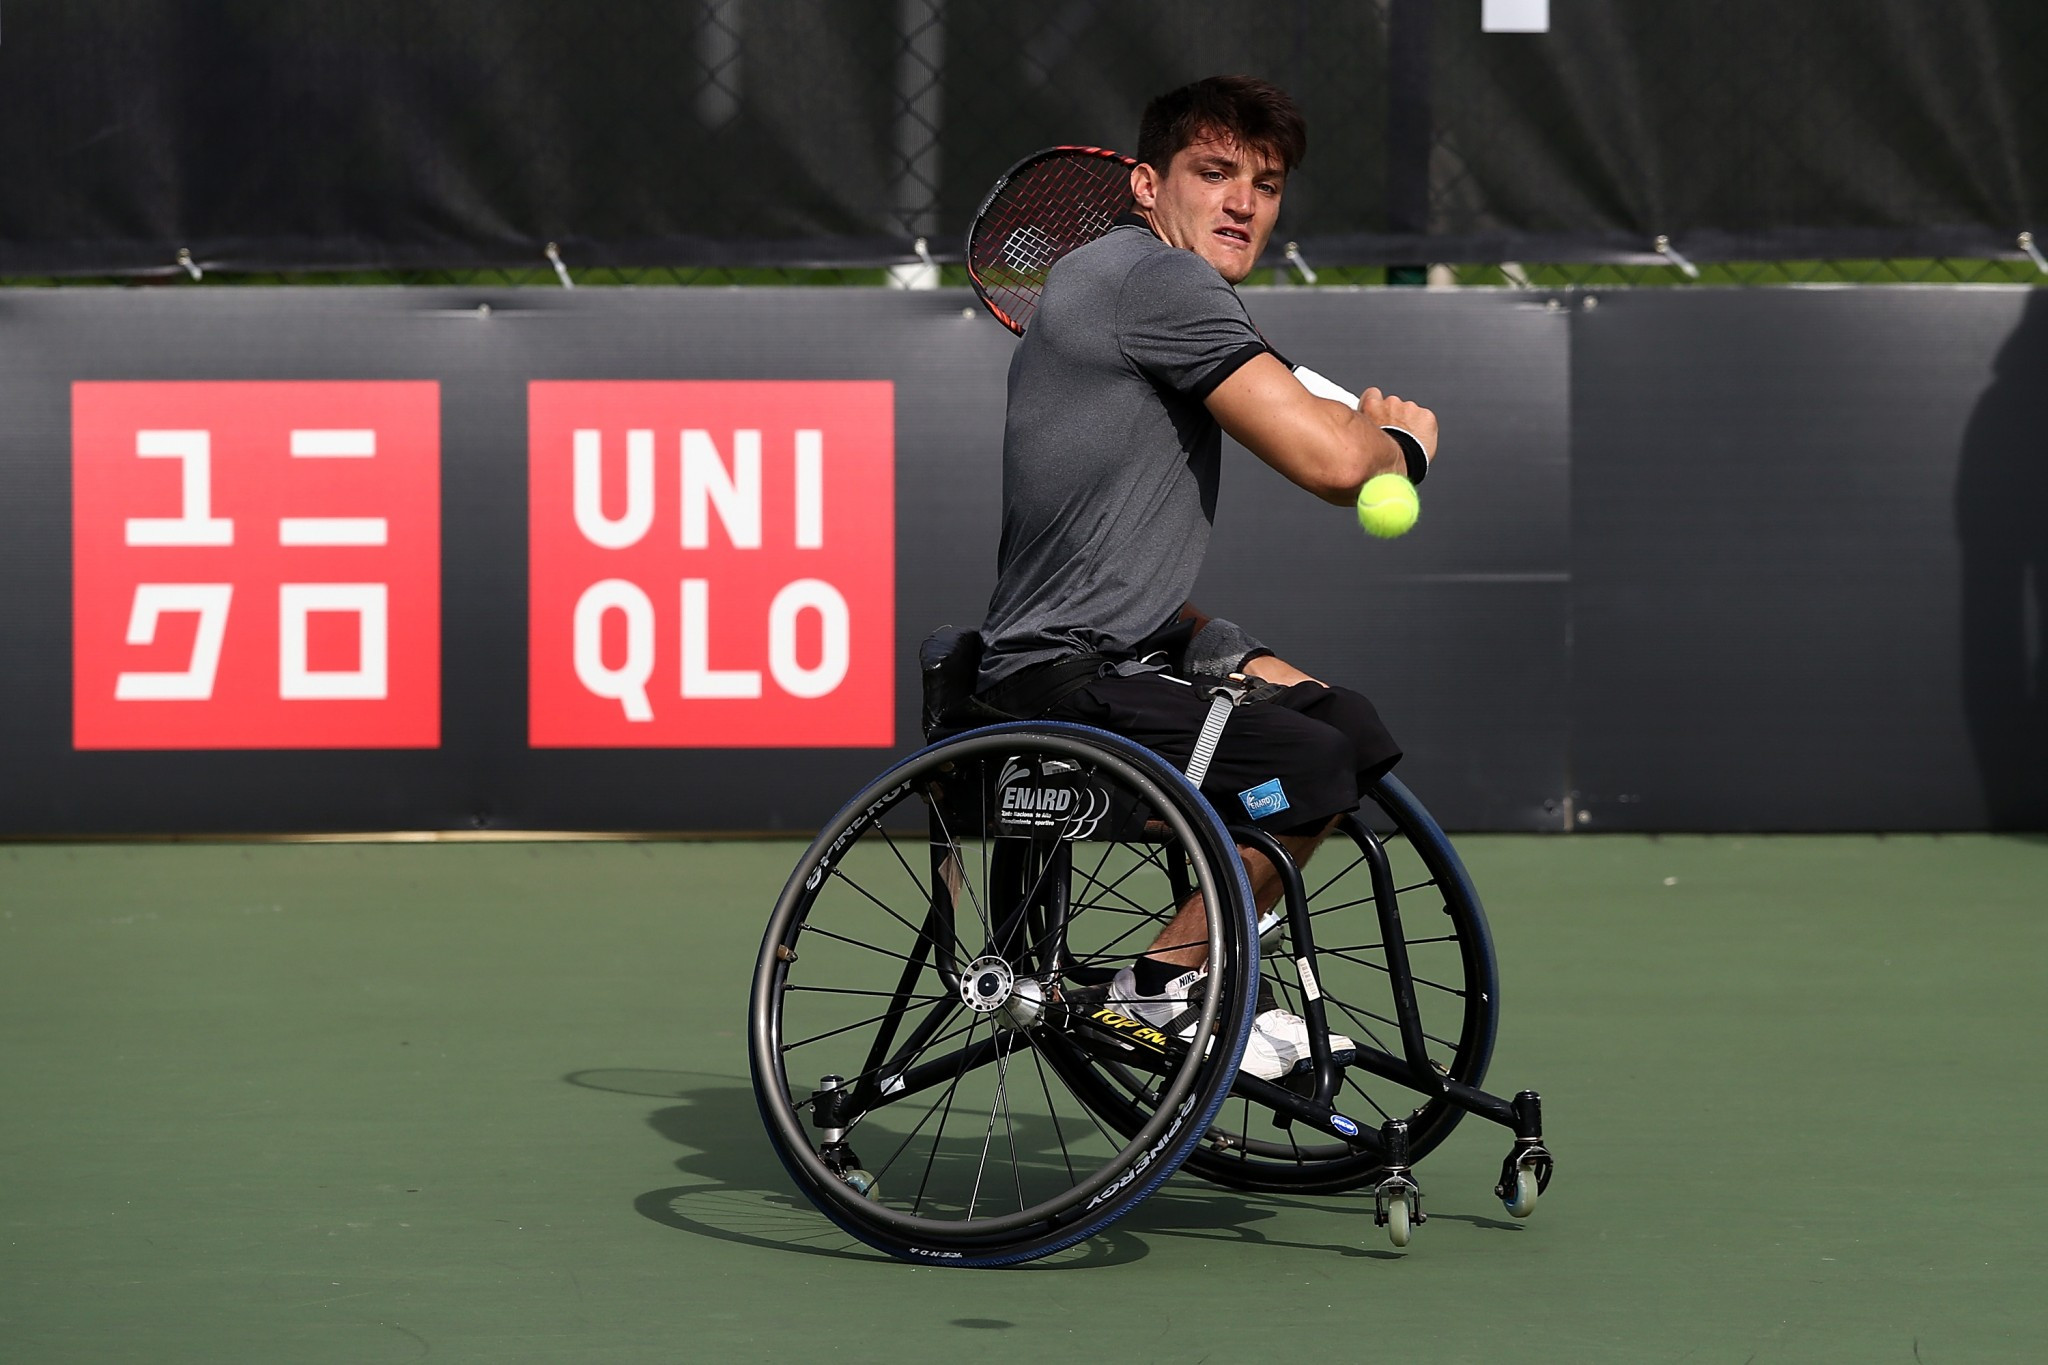 World number one Gustavo Fernández of Argentina has booked his place in the semi-finals of the US Open wheelchair men's singles event ©Getty Images